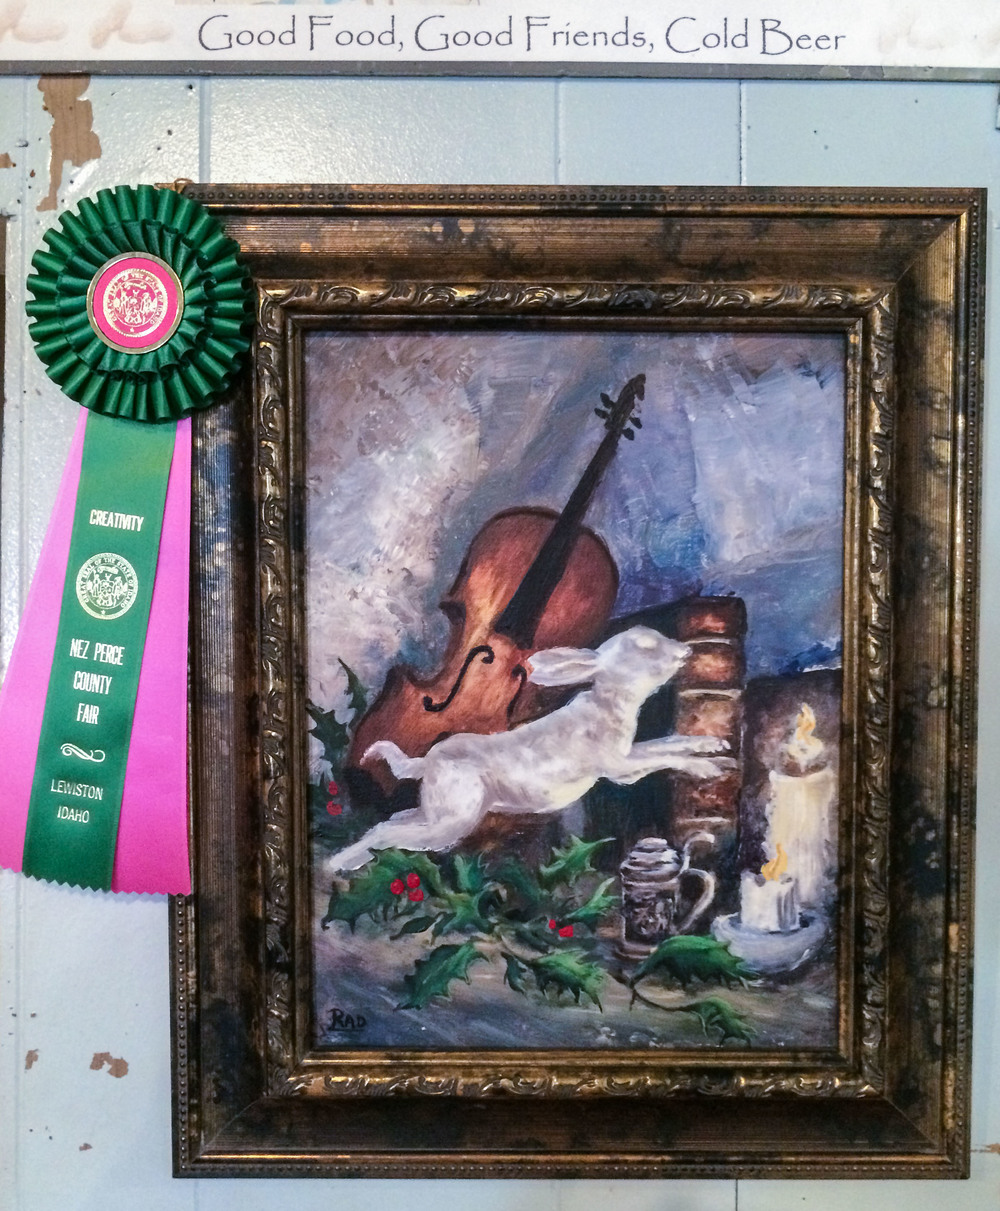 One of the many pieces on the wall in Keuterville. Award winning at the Nez Pierce County Fair!